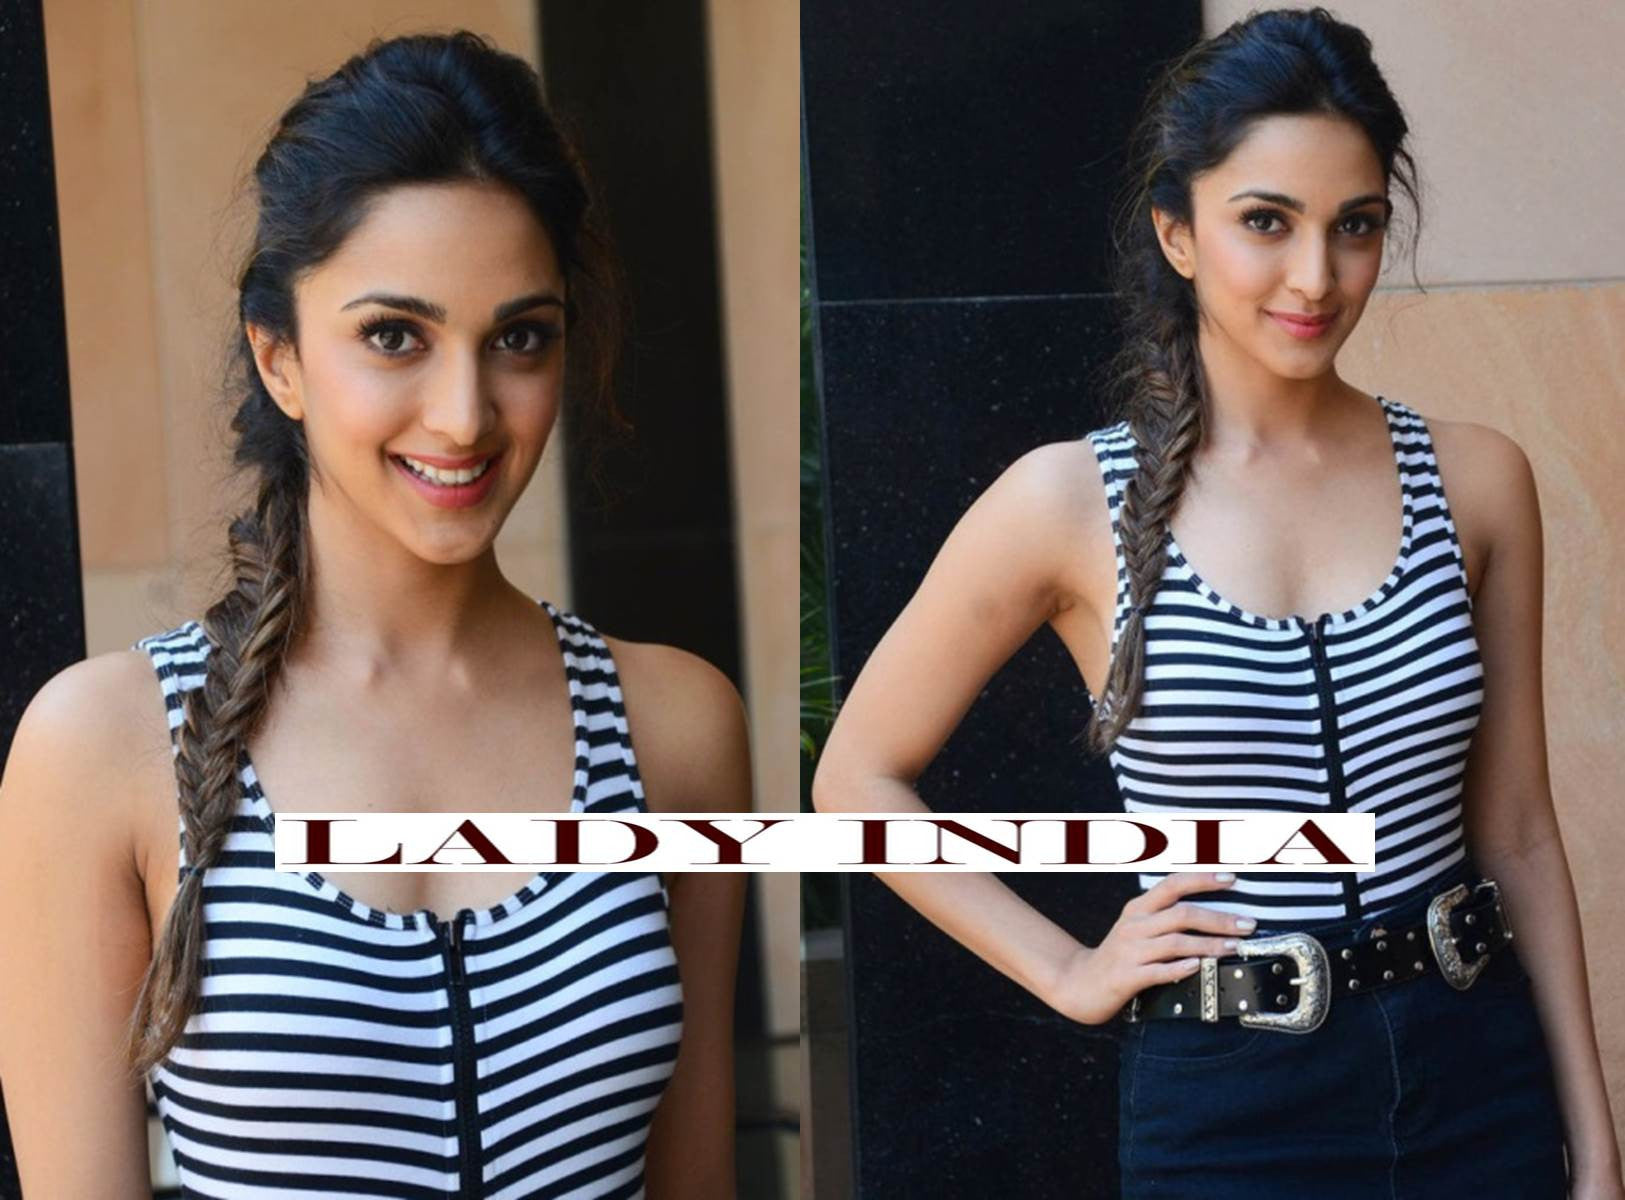 Kiara Advani in striped tank top featuring a front zipper and a threaded navy blue skirt